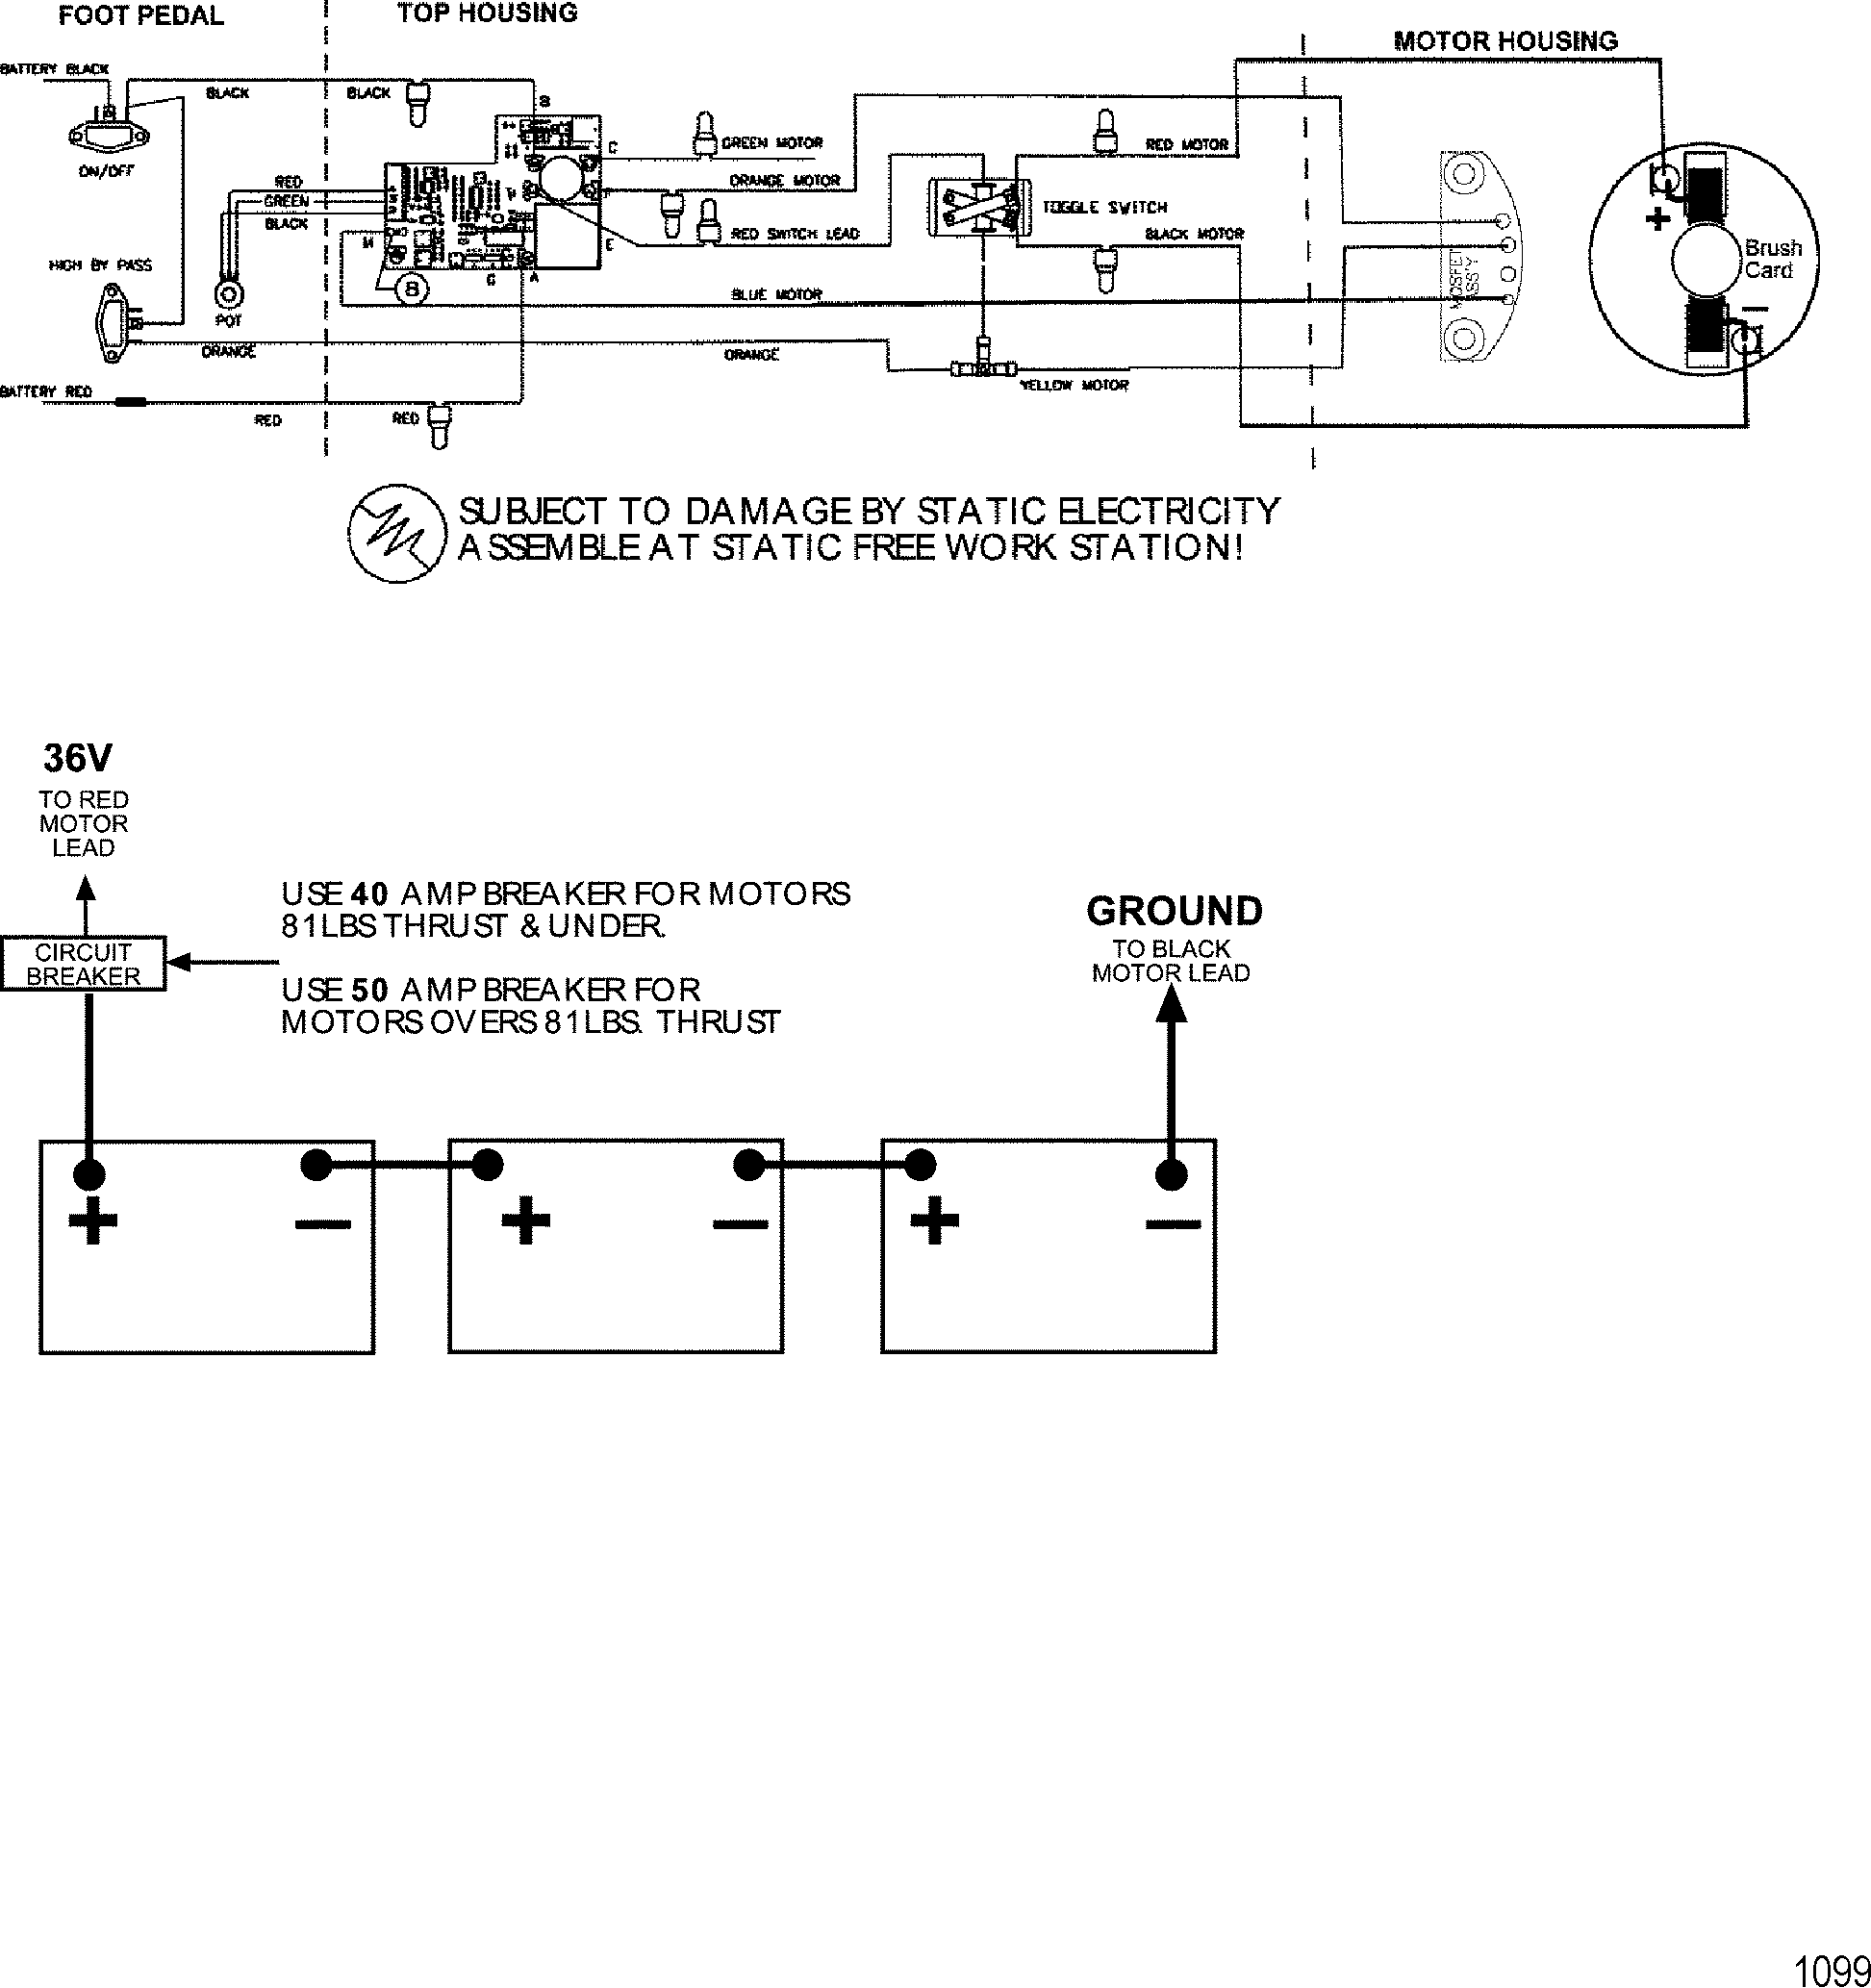 1099 diagrams 600338 motorguide trolling motor wiring diagram motorguide brute 750 wiring diagram at bayanpartner.co